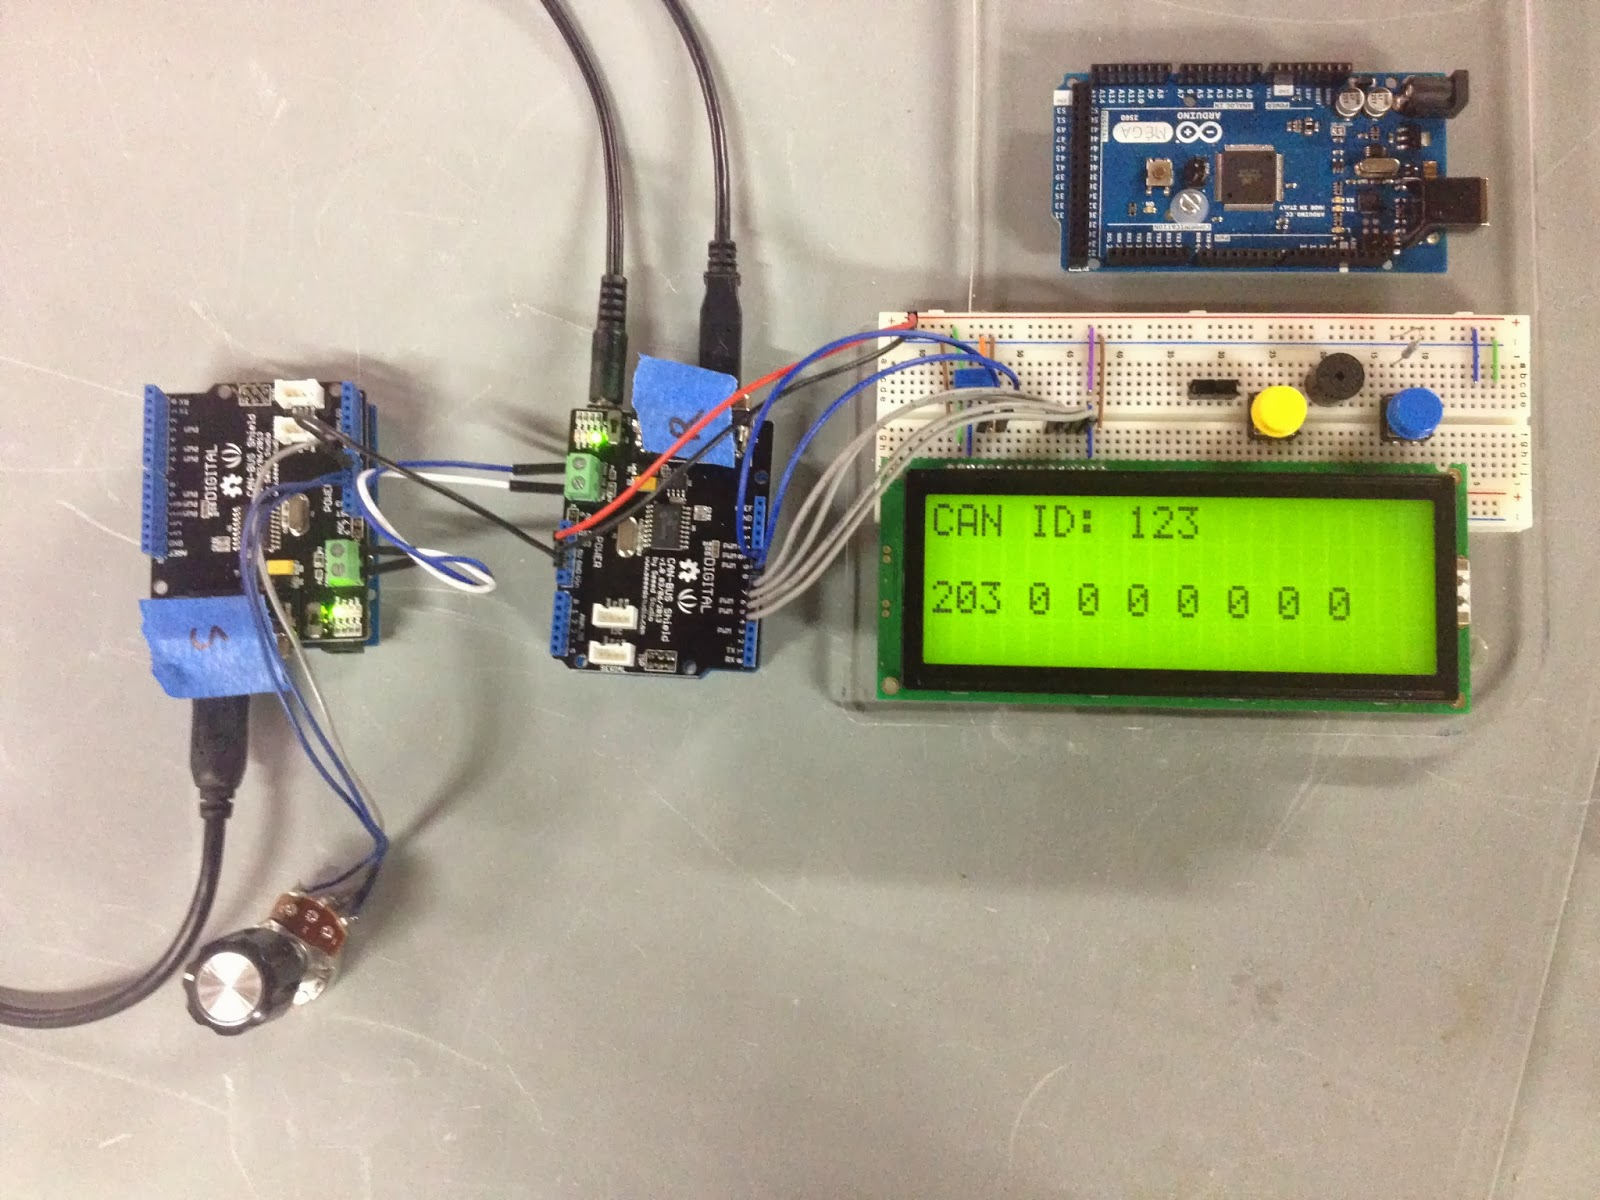 Matthew McMillan: Arduino - Sending data over a CAN bus